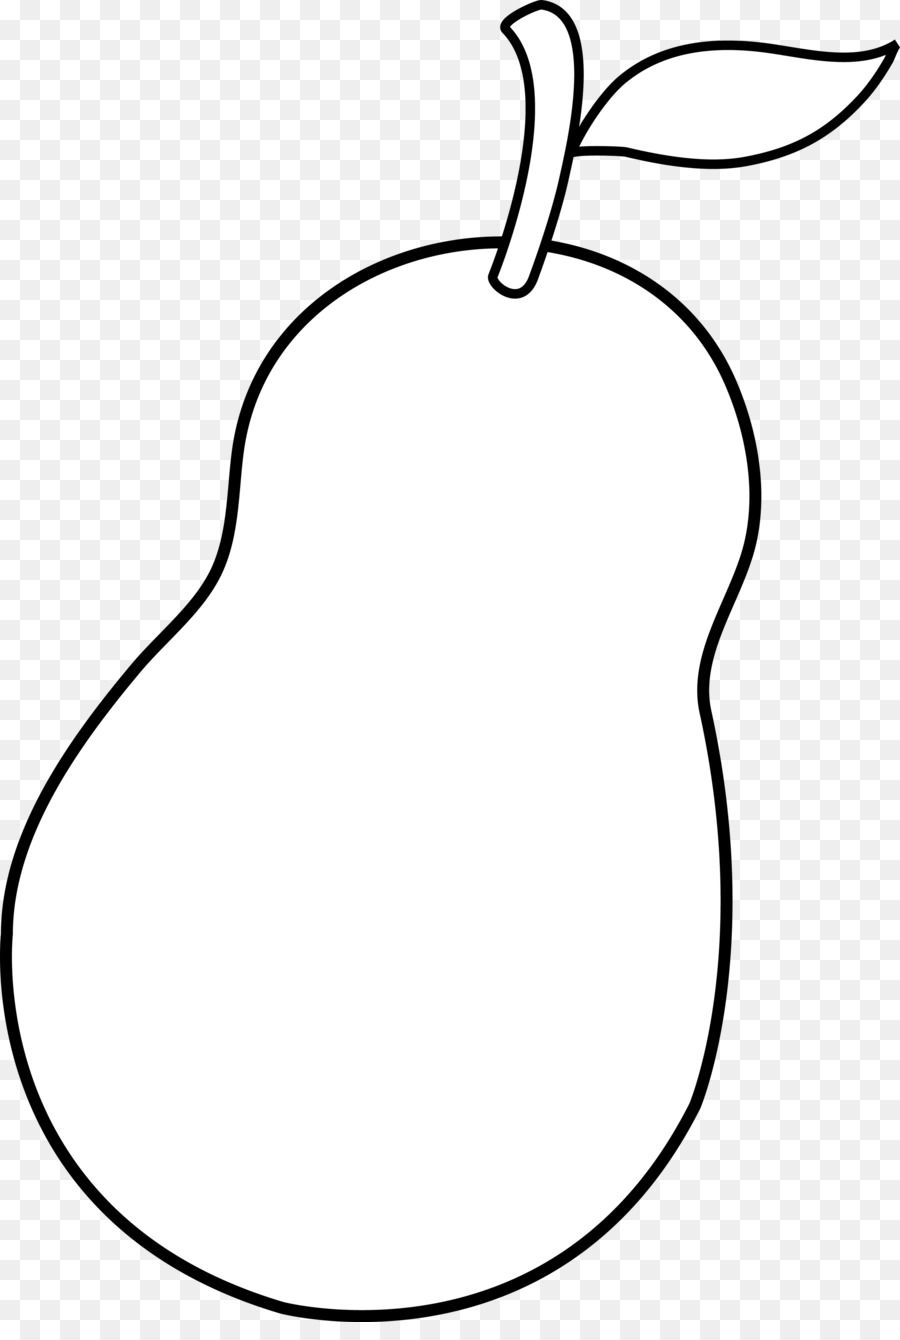 Line background png download. Free black & white clipart of a pear core